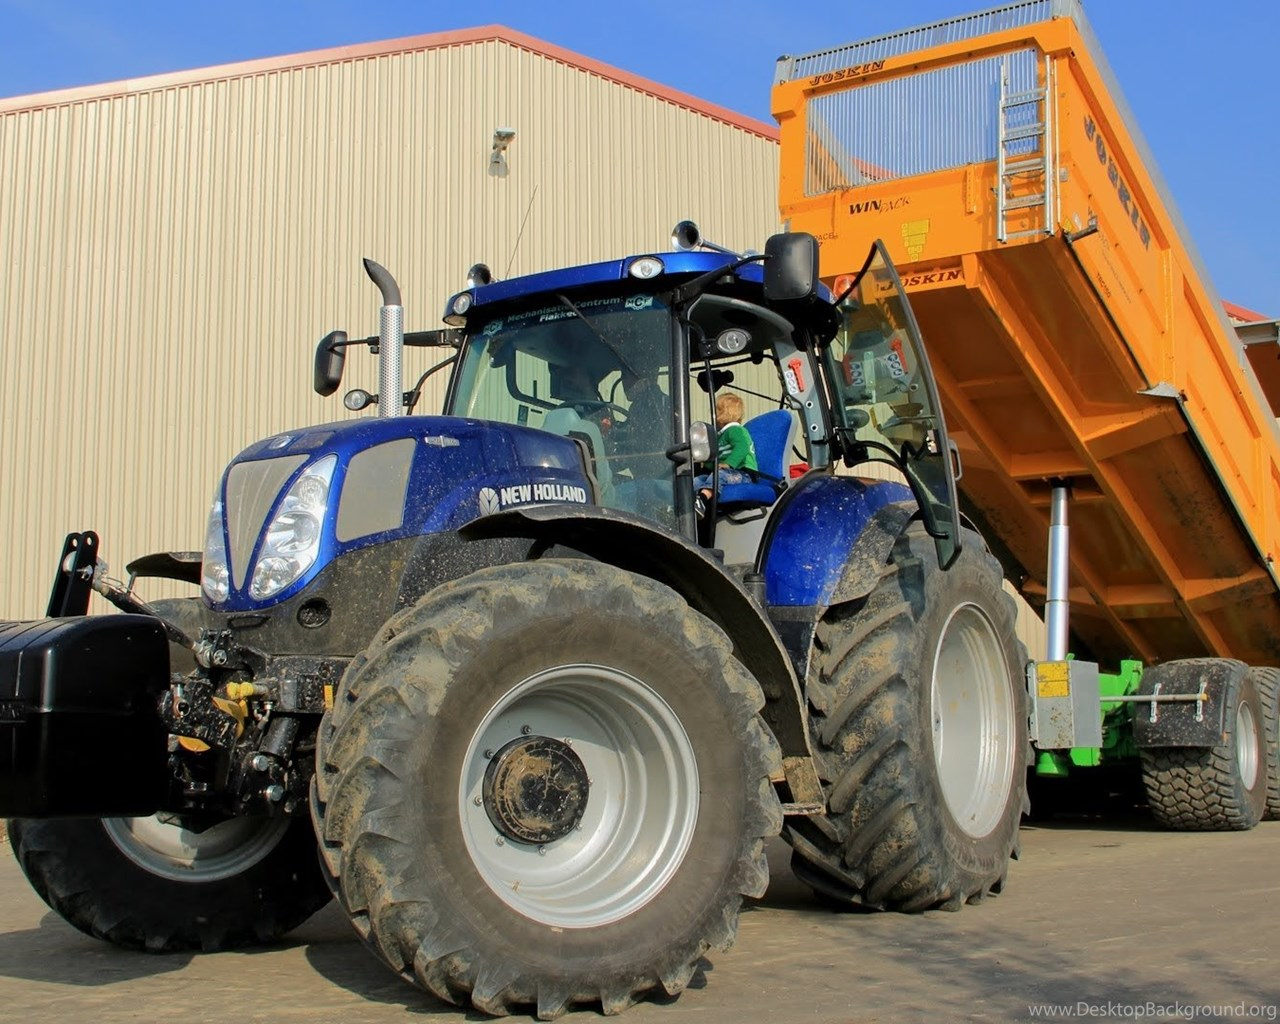 Loading Onions With Many New Hollands + New Holland T7 210 Blue